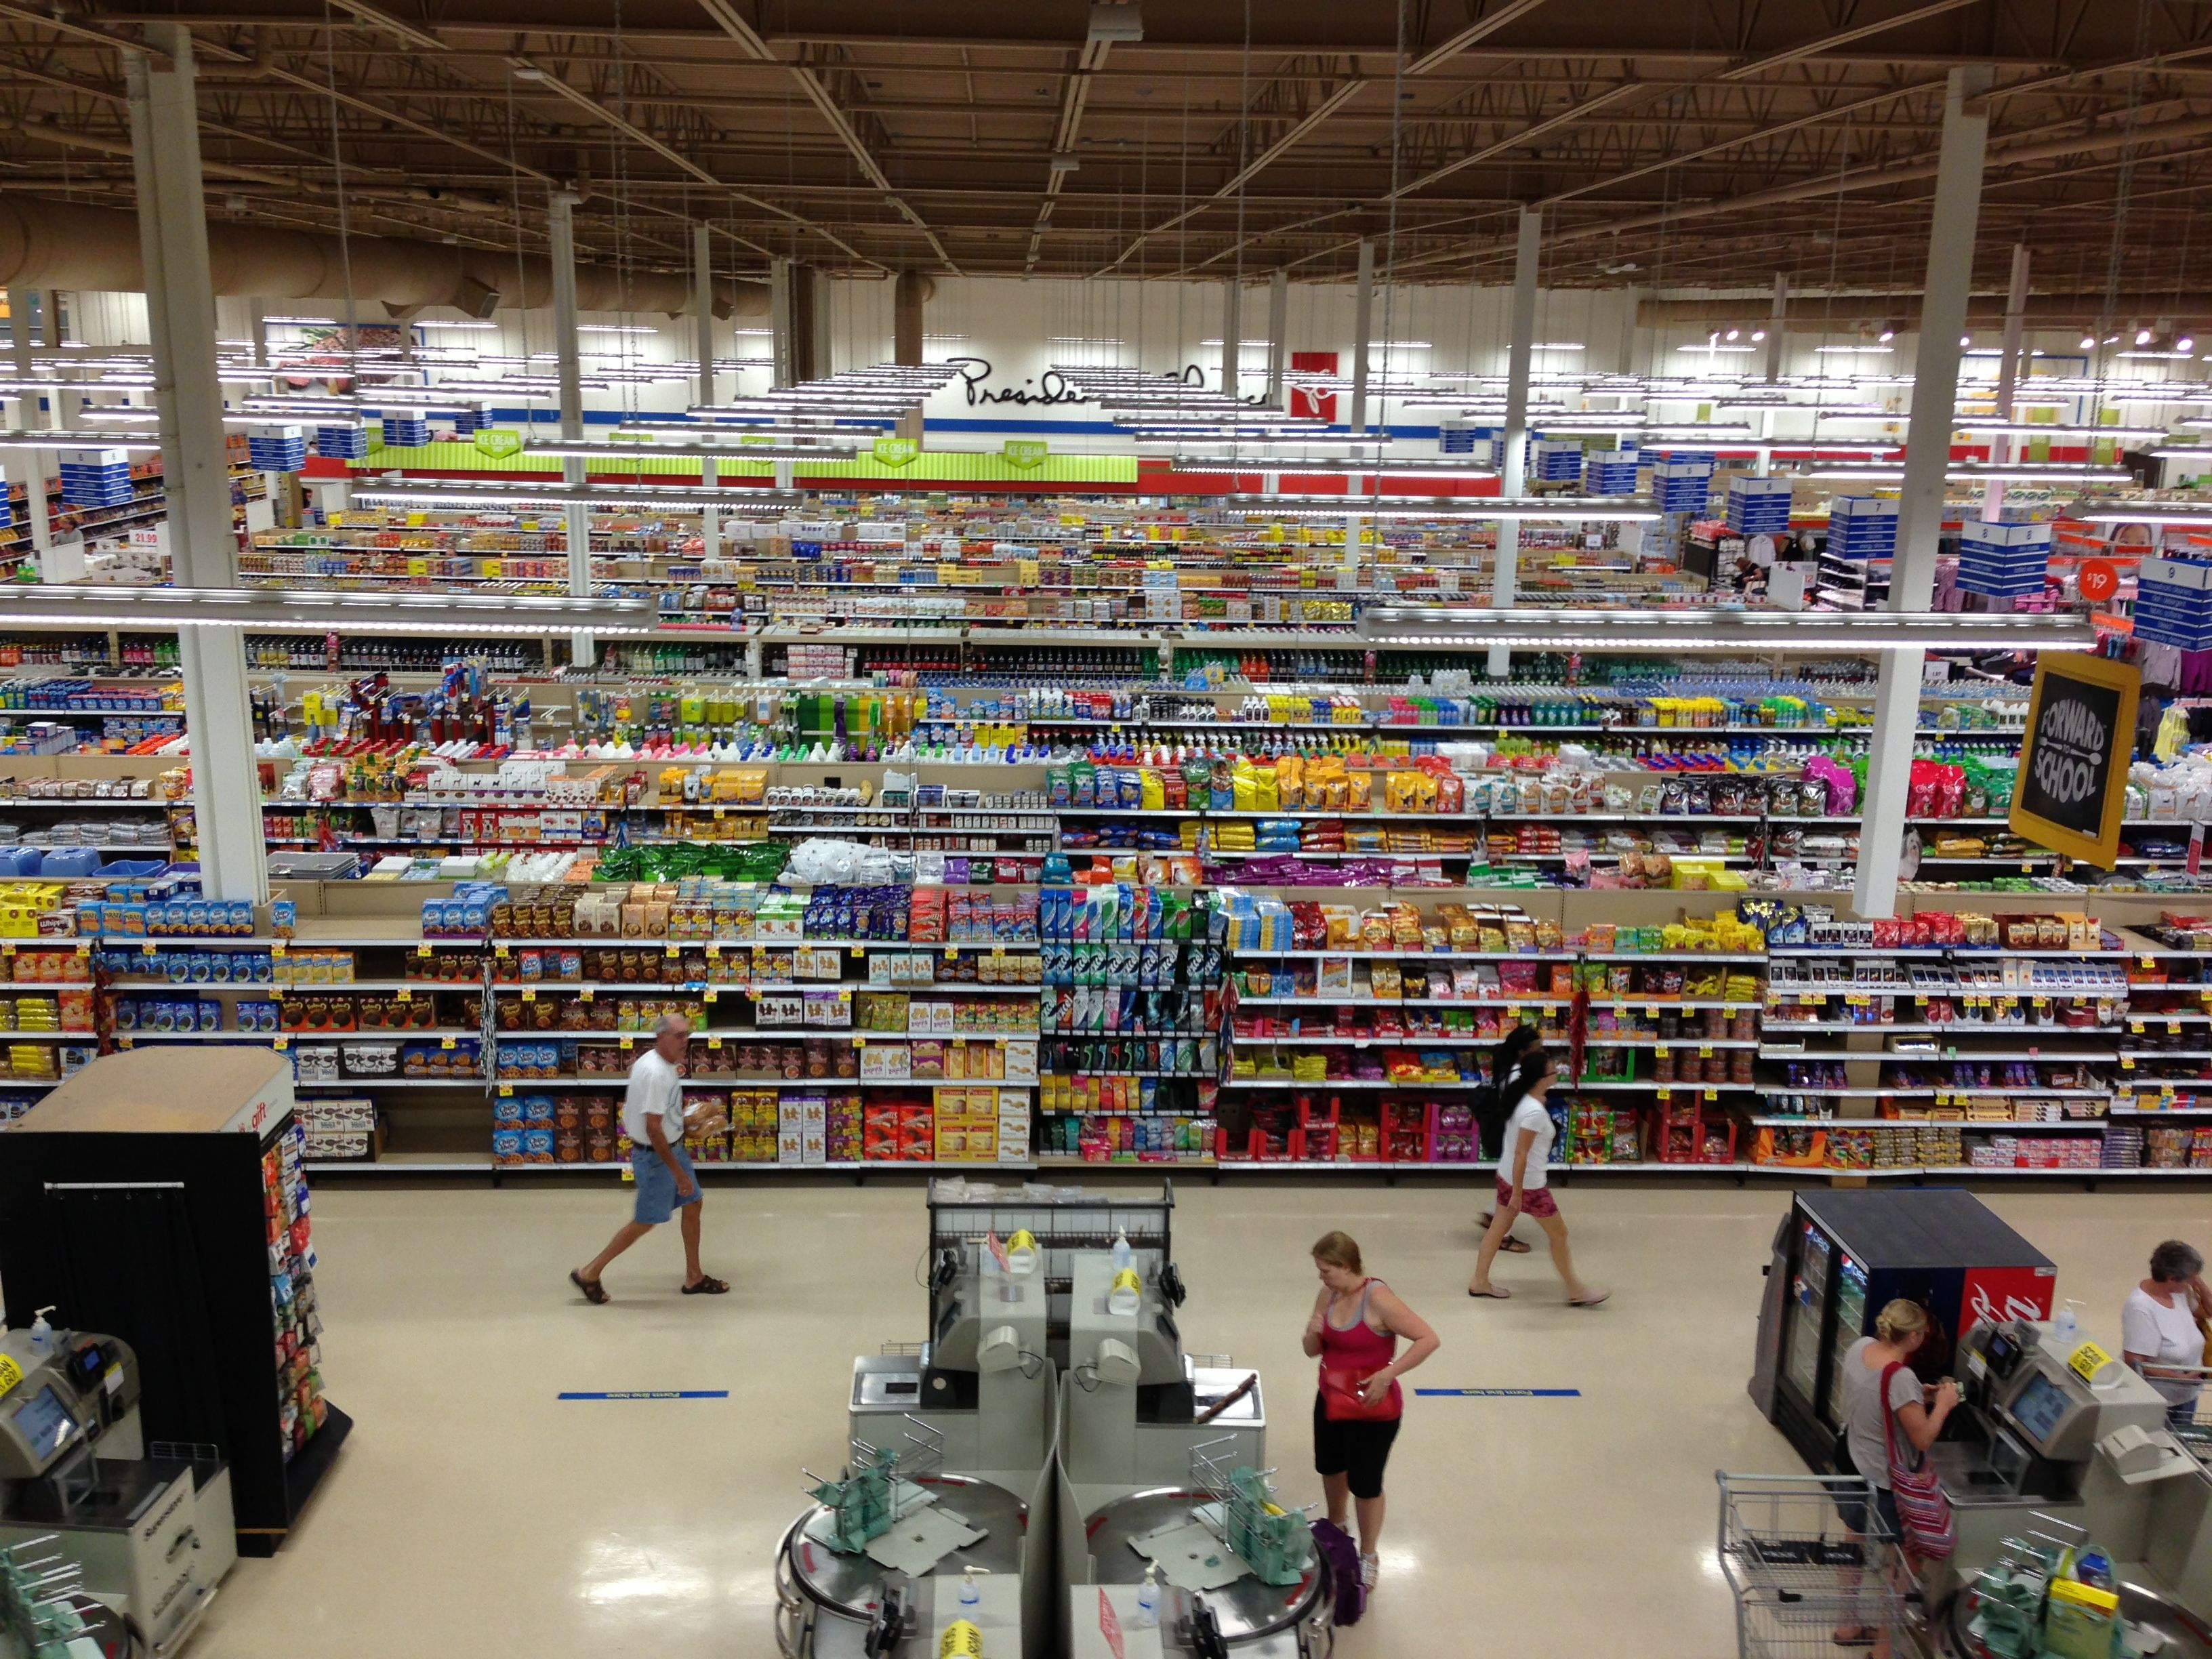 Top 5 Healthy Products at the Grocery Store Adam Hart's